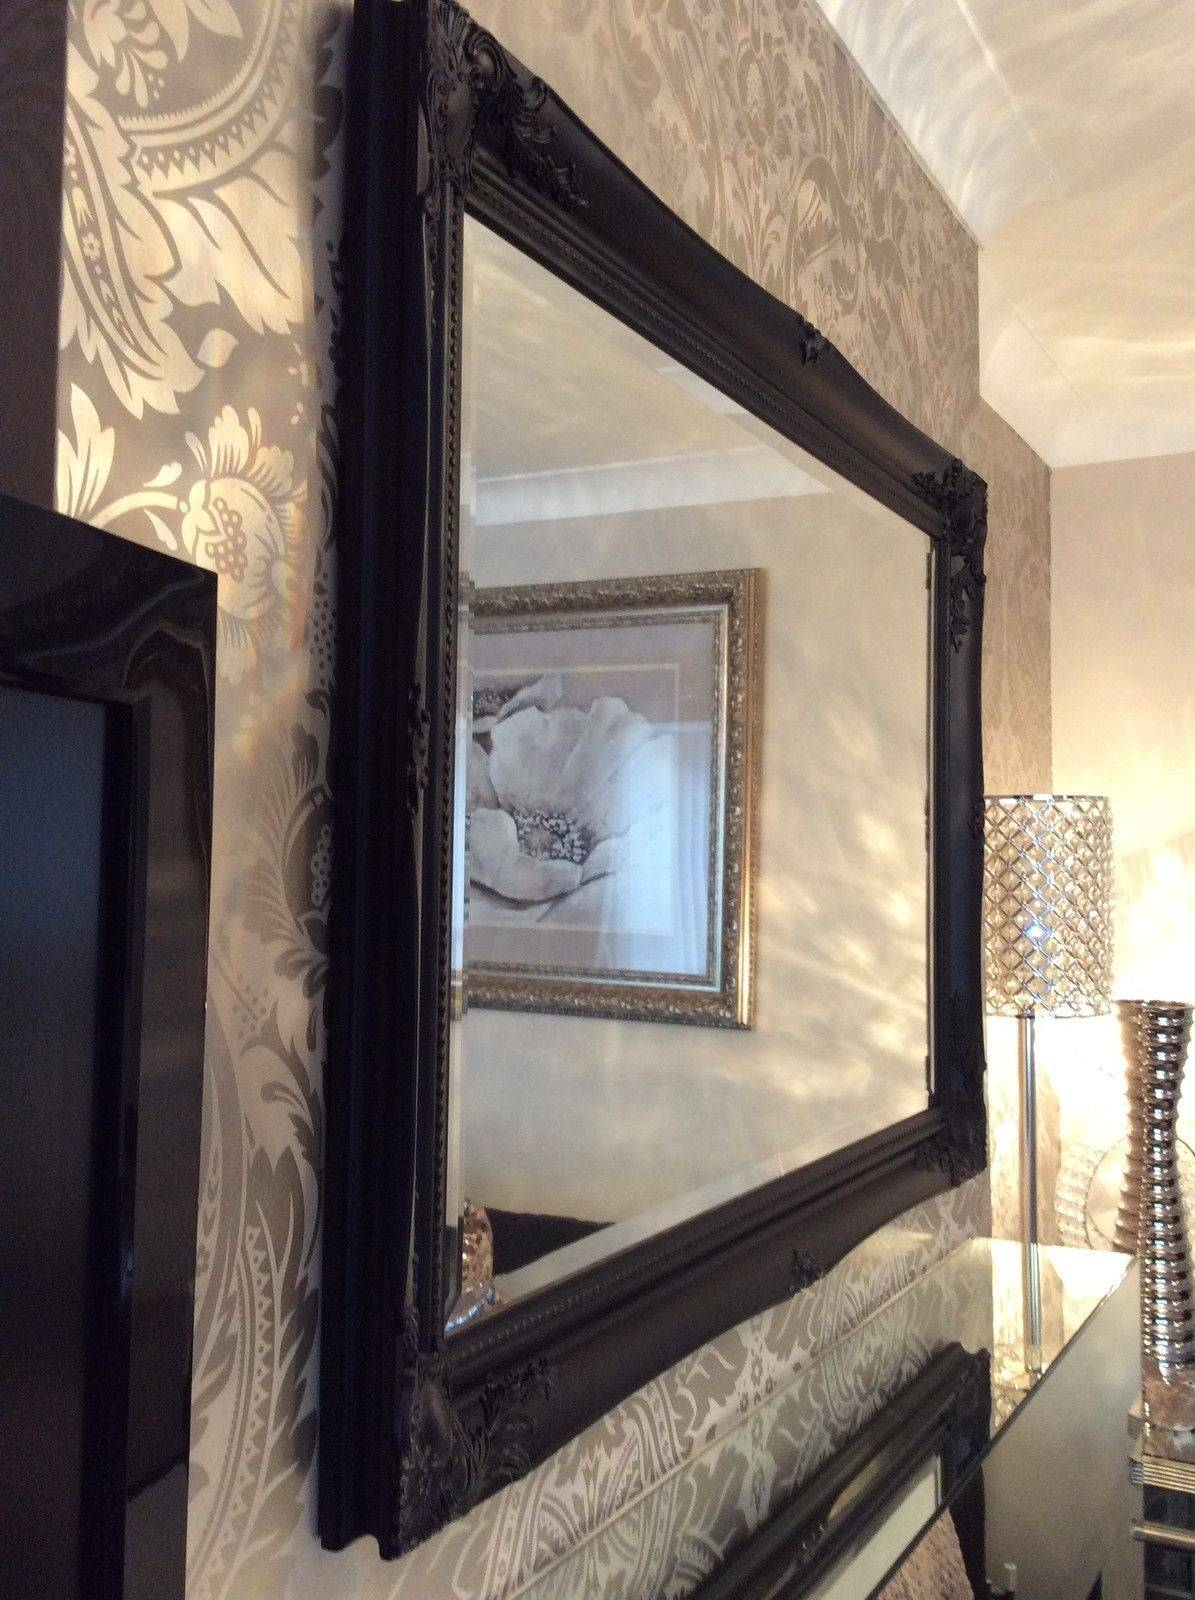 Black Shabby Chic Framed Ornate Overmantle Wall Mirror - Range Of regarding Long Black Wall Mirrors (Image 6 of 15)